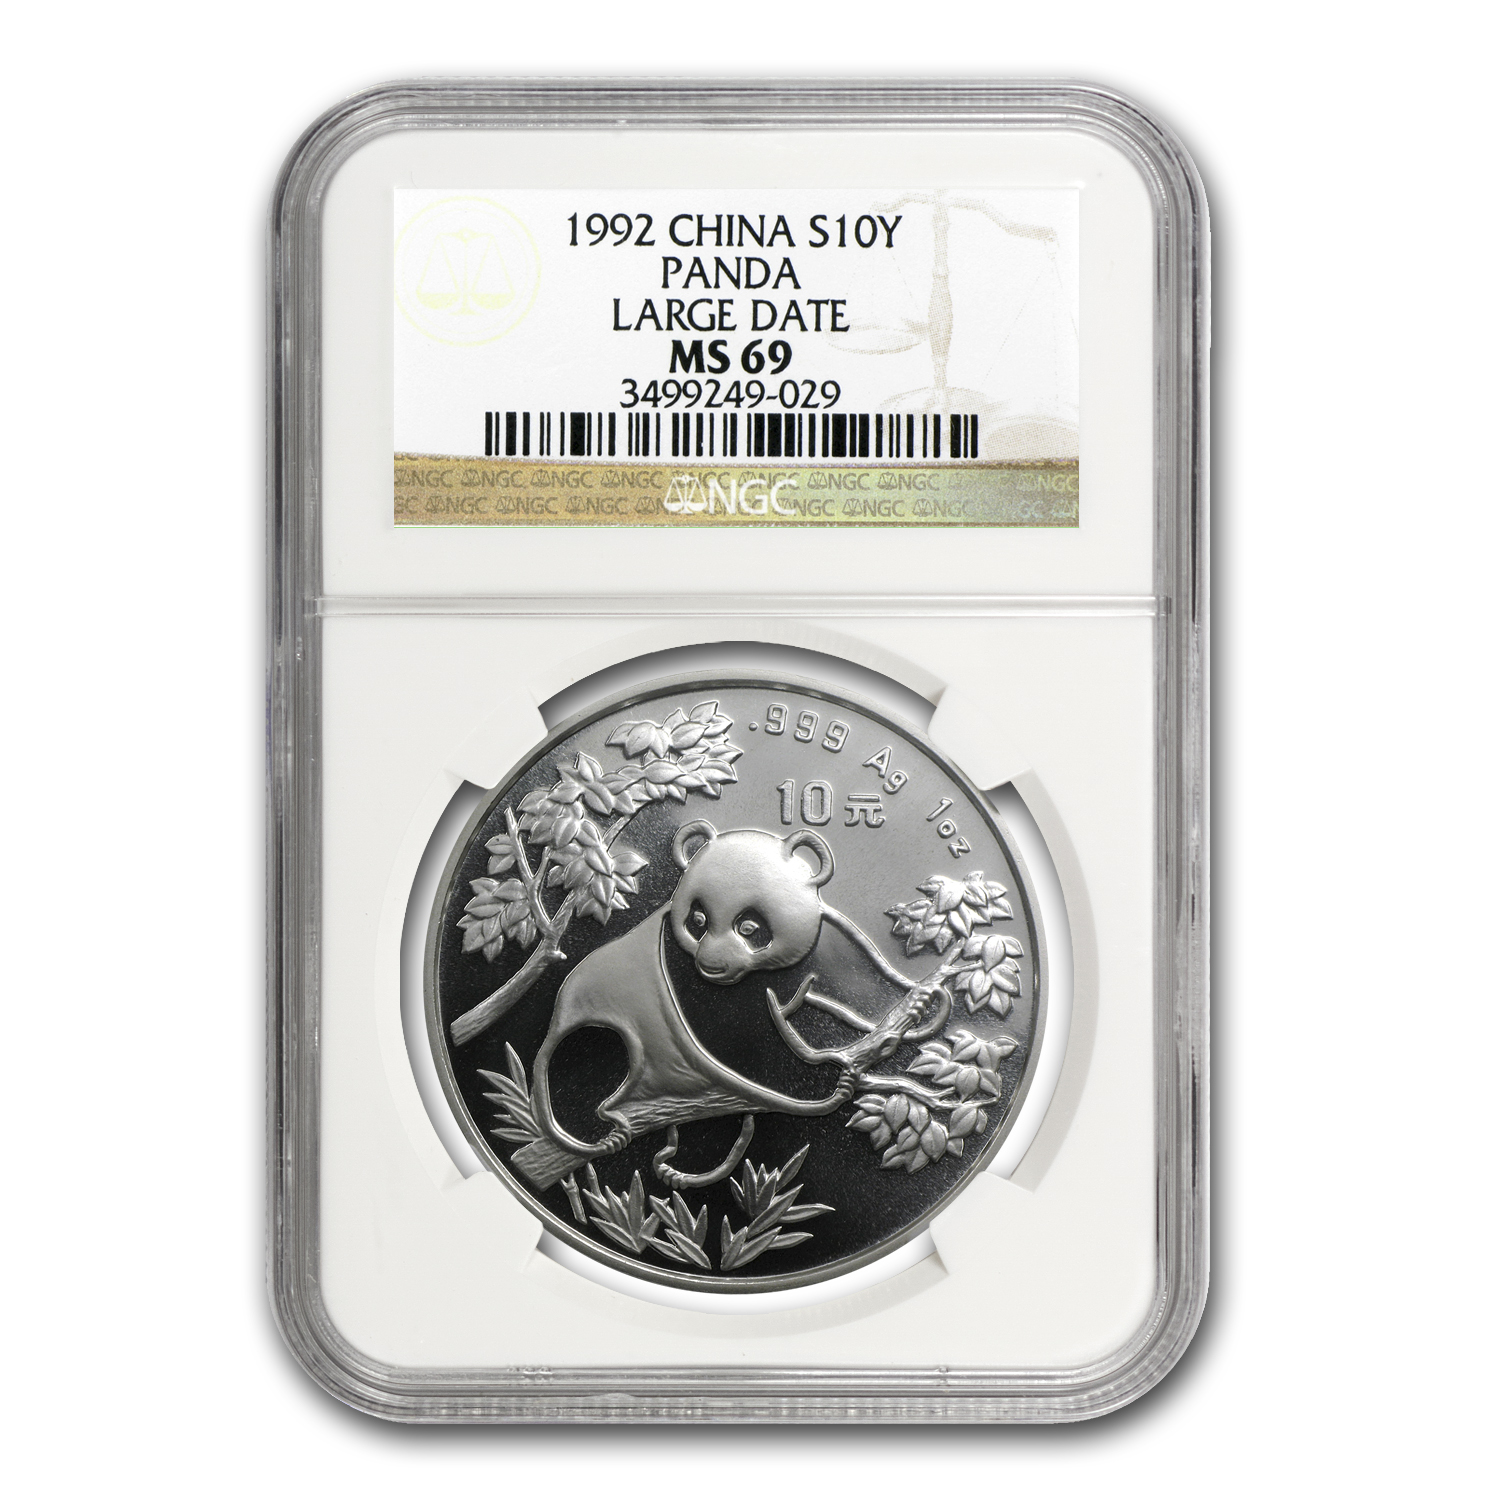 1992 Silver Chinese Panda 1 oz - MS-69 NGC - (Large Date)